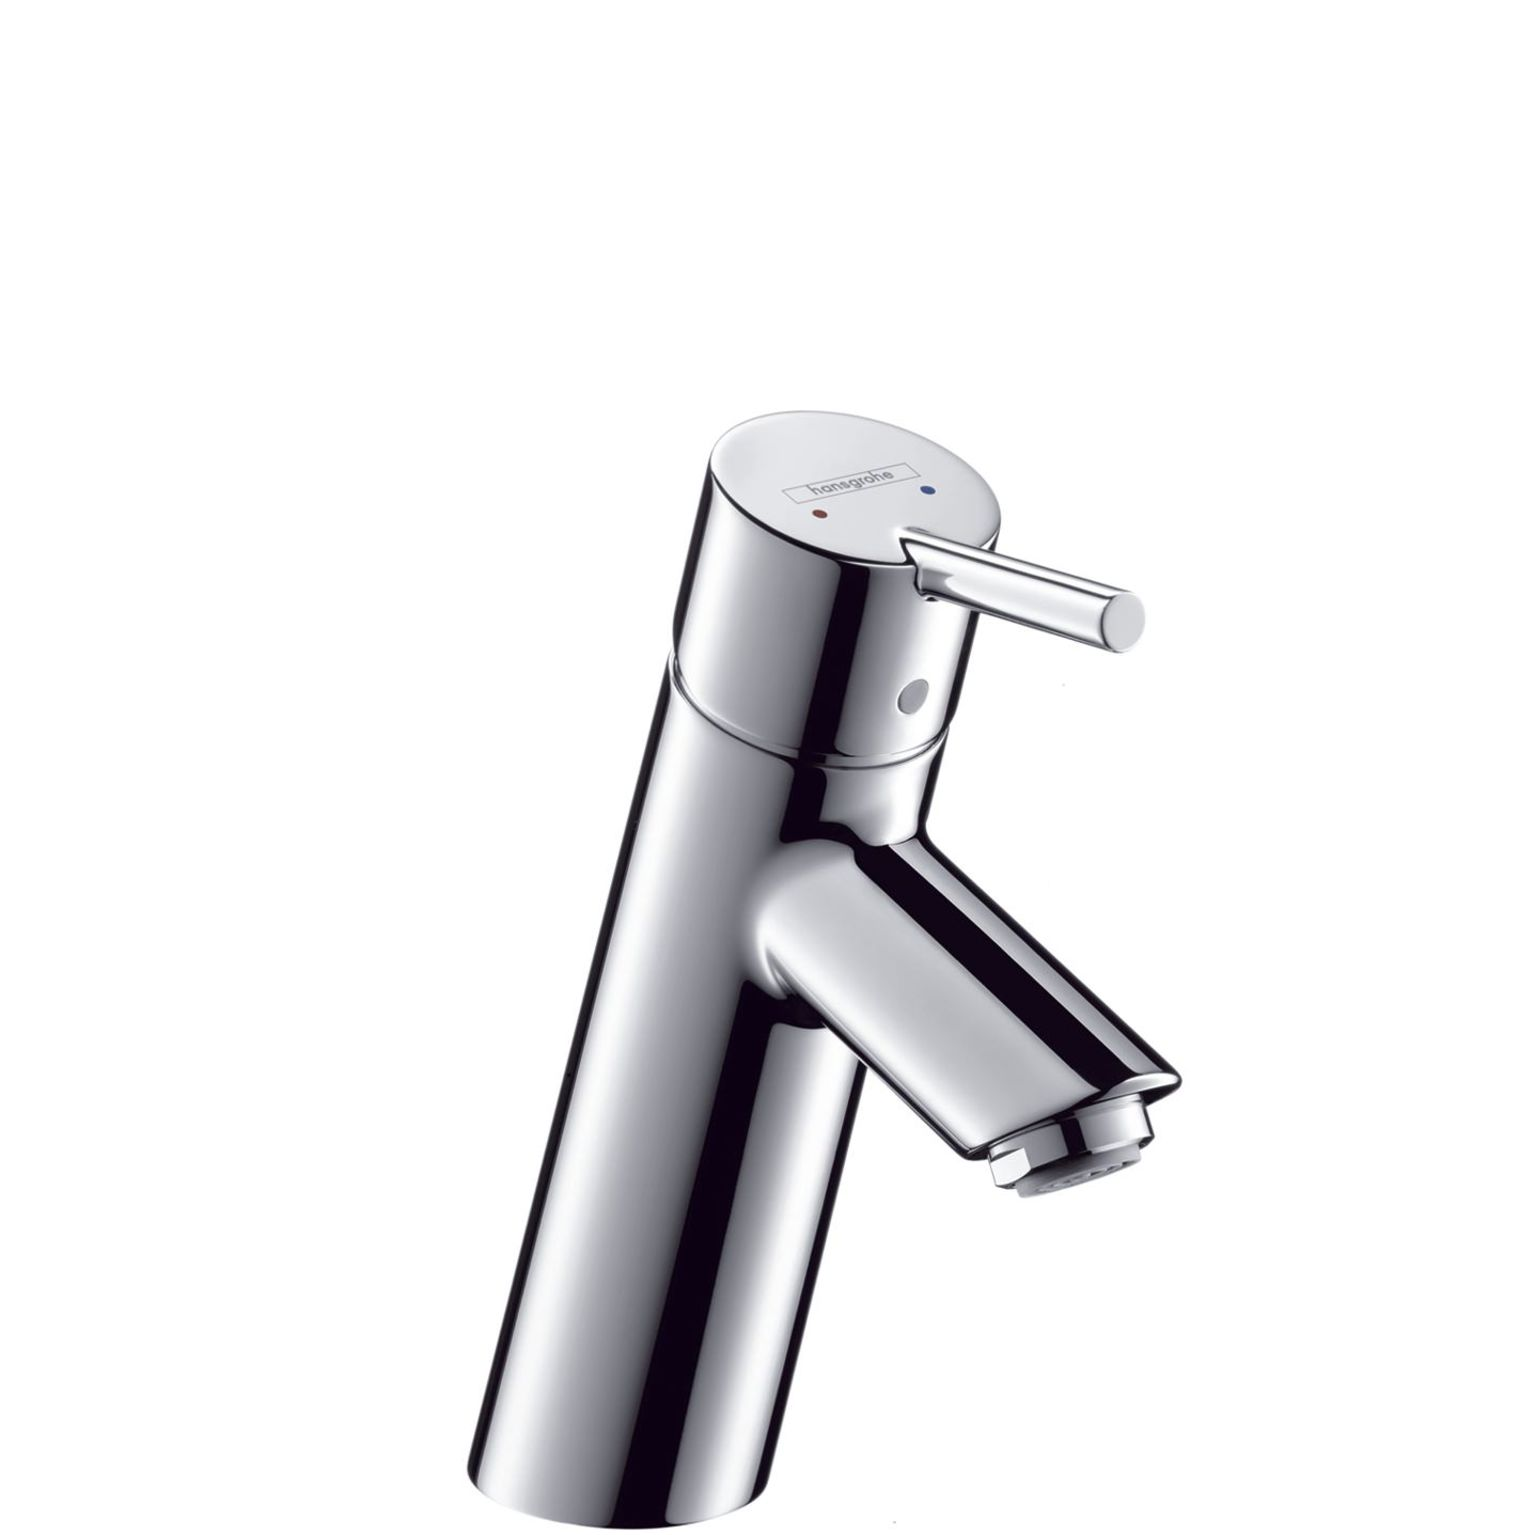 Hansgrohe Talis S2 - Entry - iF WORLD DESIGN GUIDE